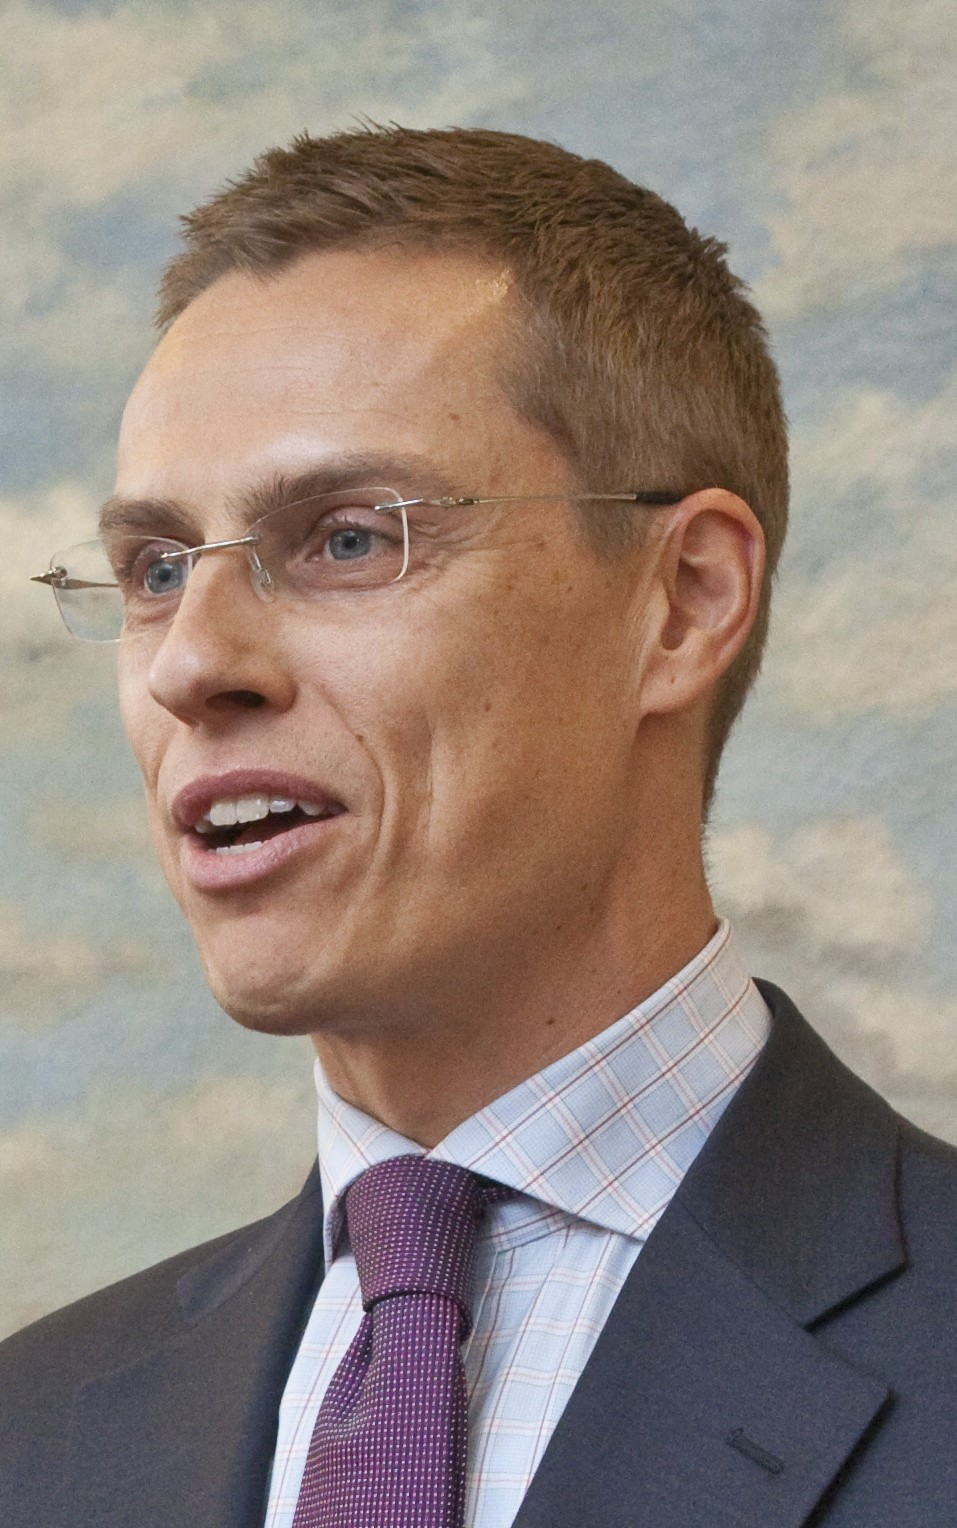 File:Alexander Stubb on February 11, 2011.jpg Facts for Kids | KidzSearch.com